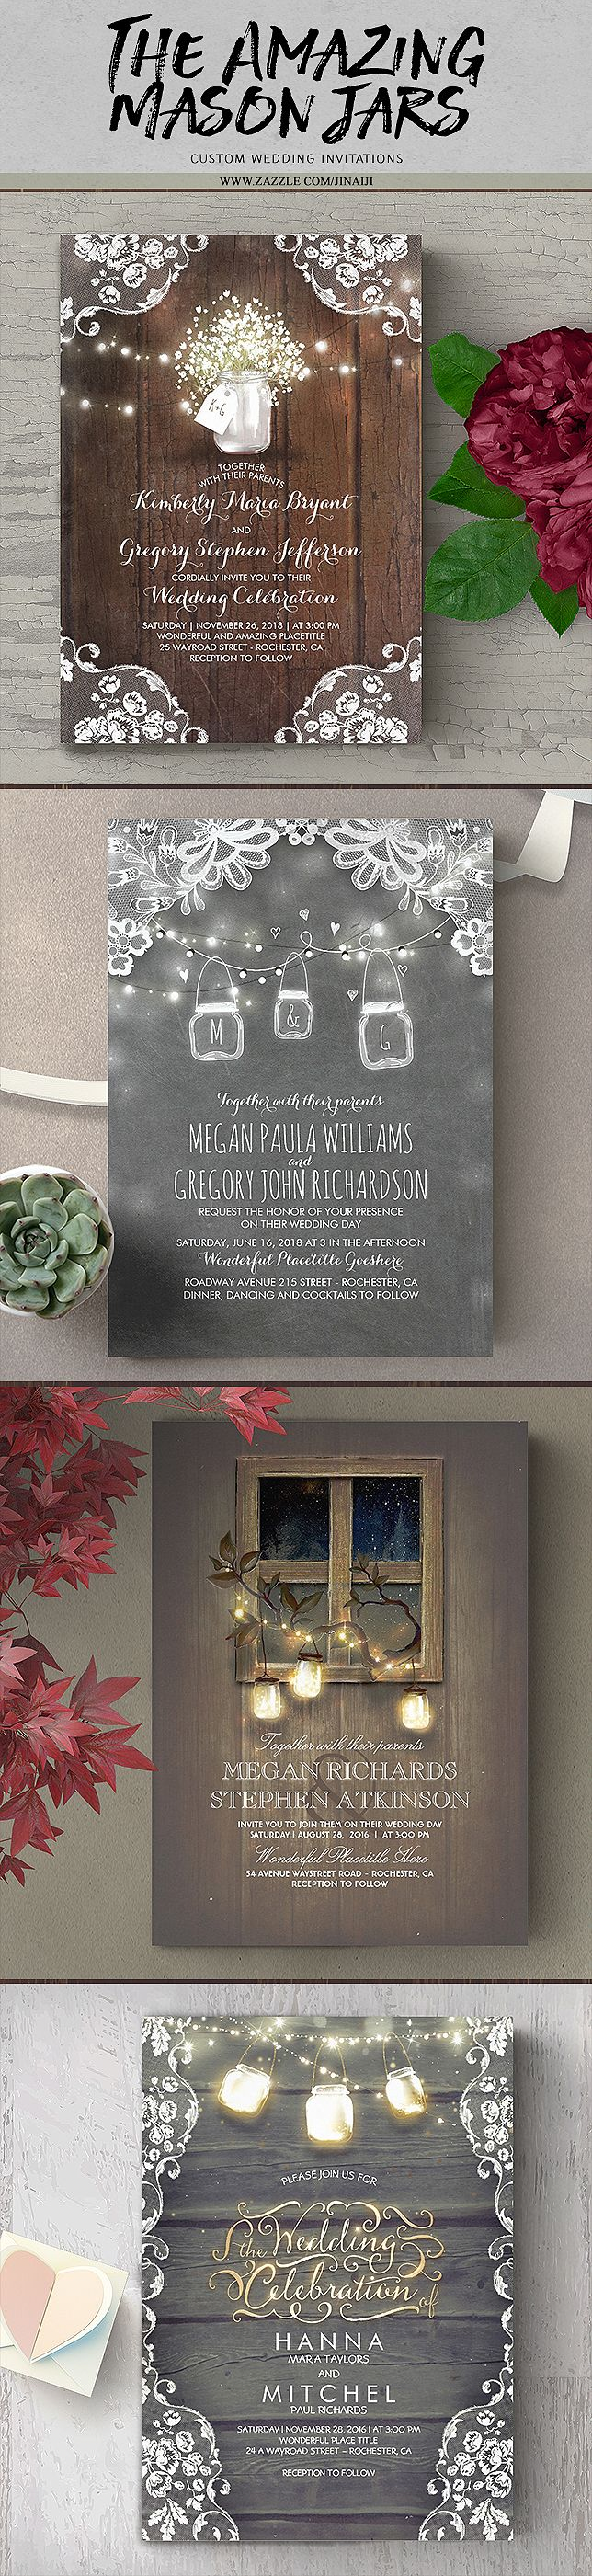 Mason Jars and Dreamy Rustic Barn Lights Invitations. Browse all invites at : http://www.zazzle.com/jinaiji?rf=238735013921289874&tc=needwedding11